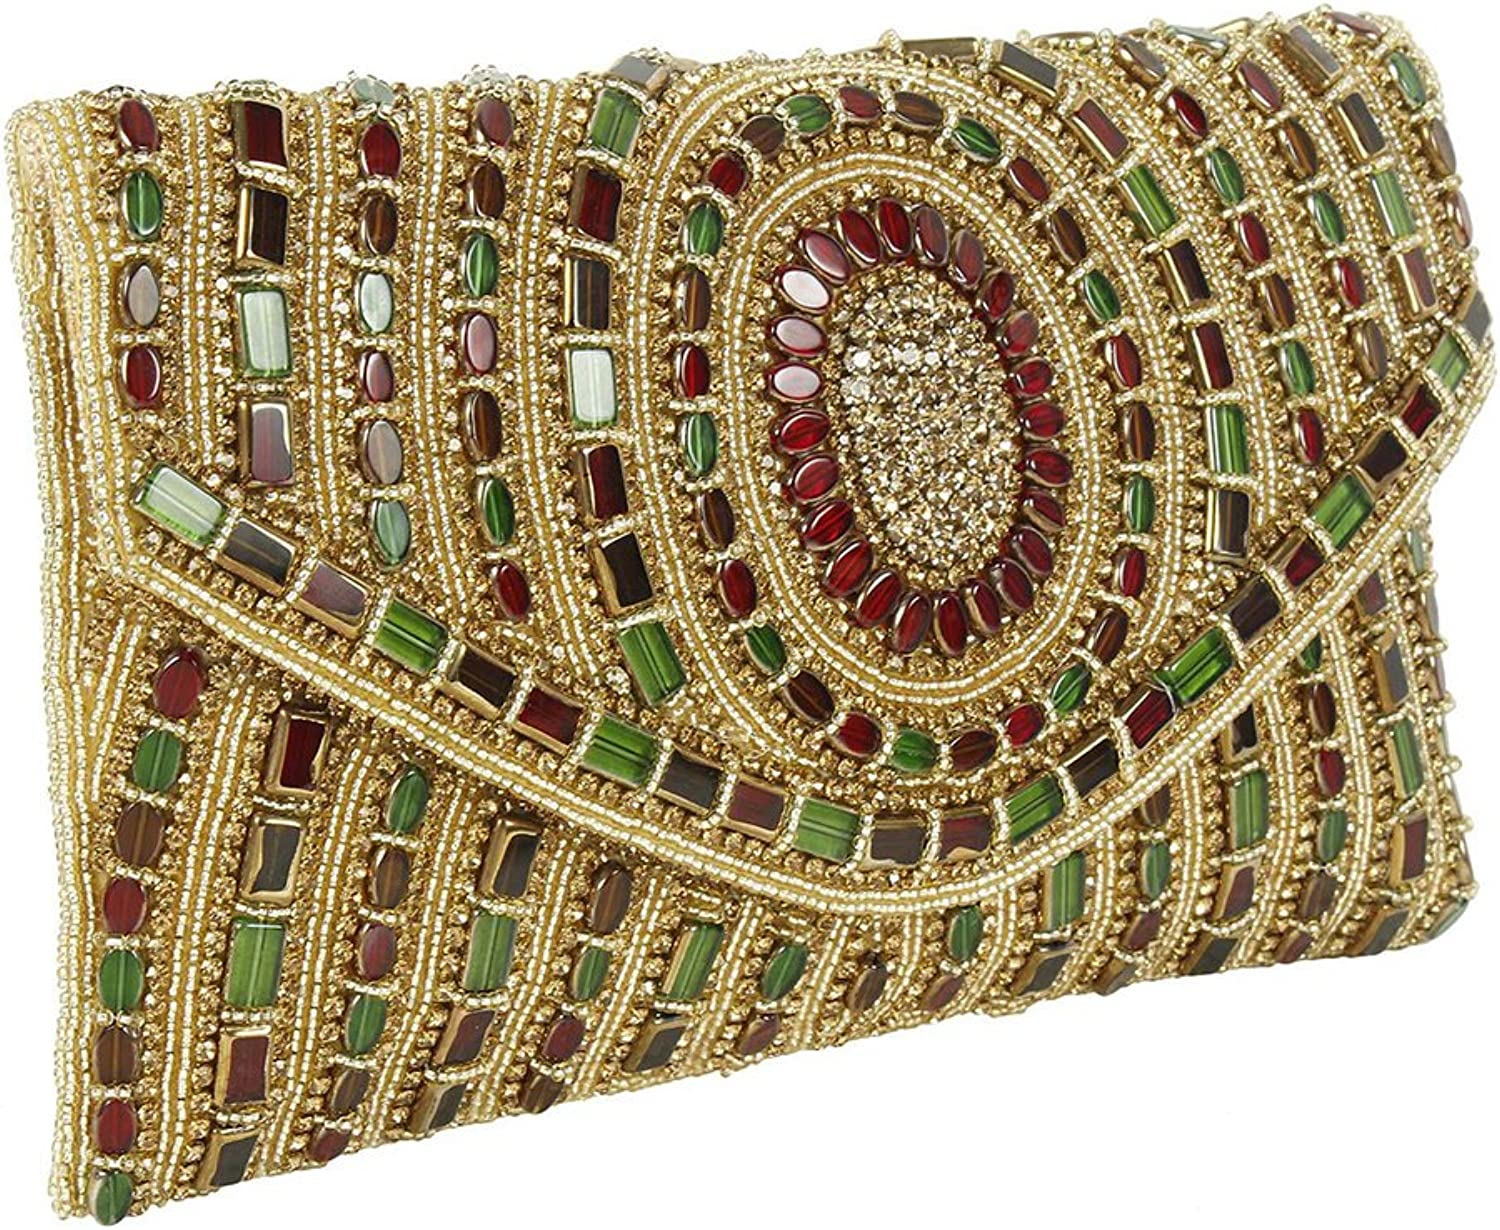 { Extra 10% Discount } Purse Collection Beautiful Multi Colour Handmade Beaded Clutch Purses For Women's